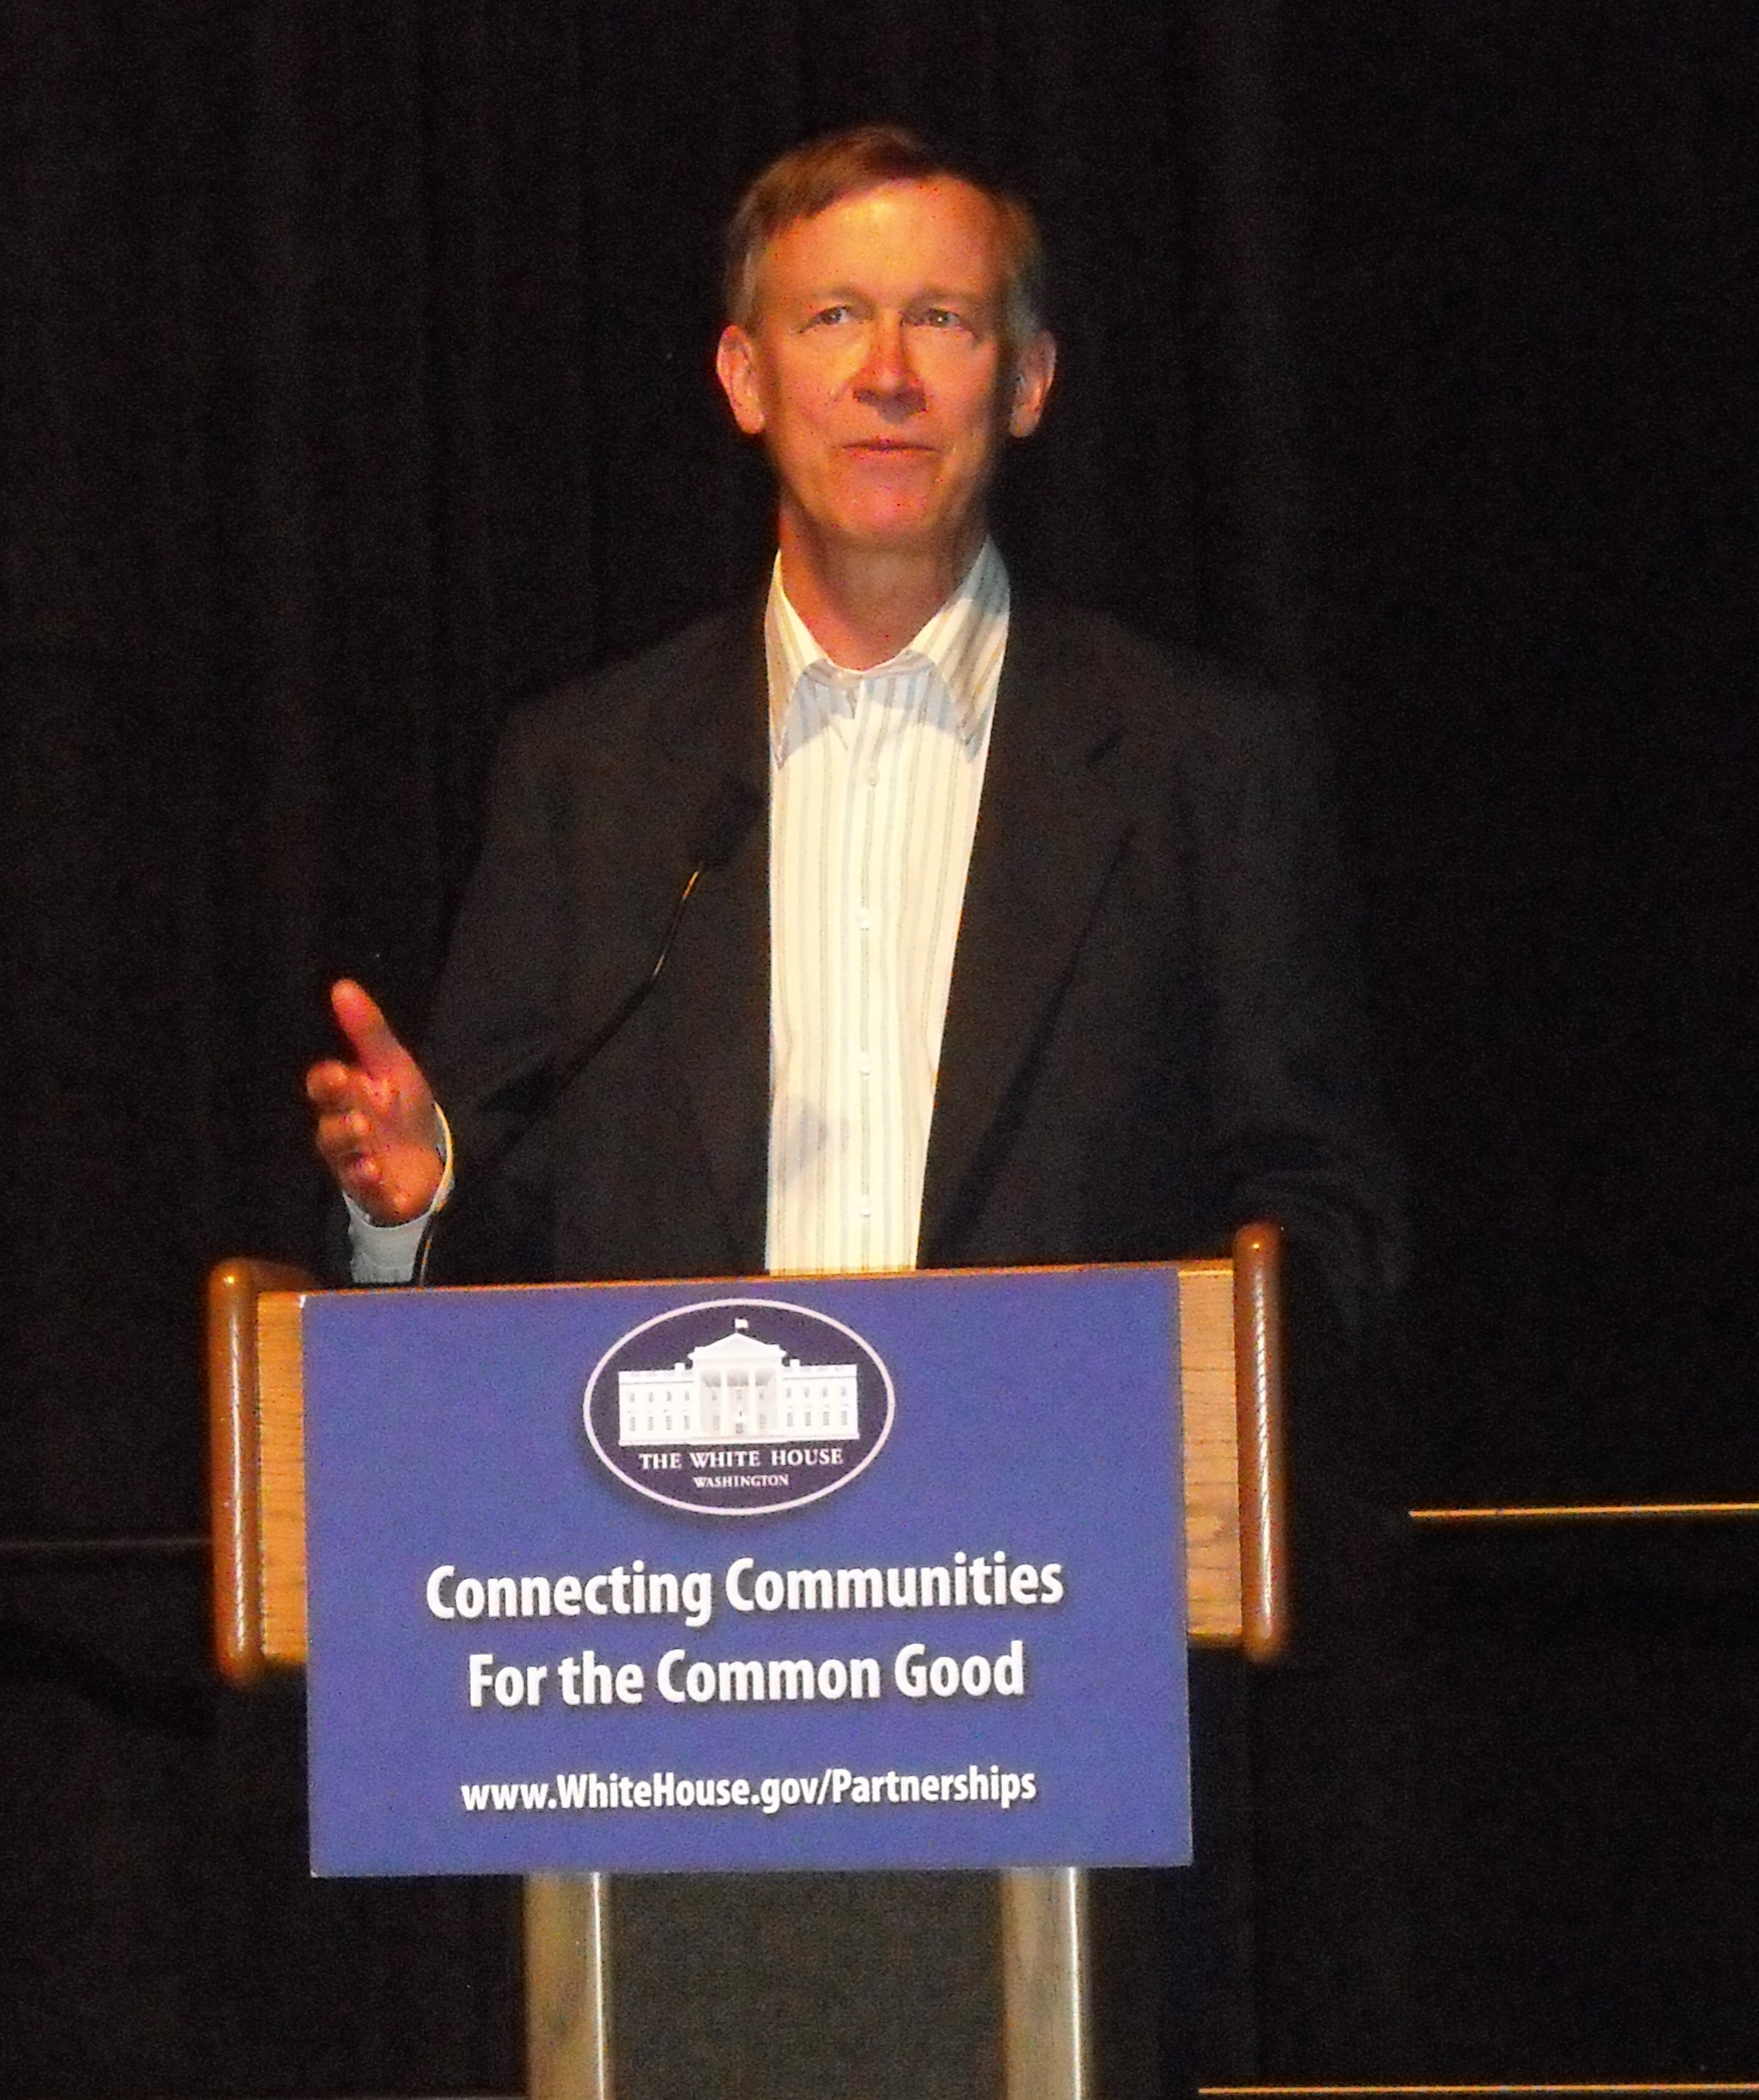 Governor John Hickenlooper at Connecting Communities for the Common Good